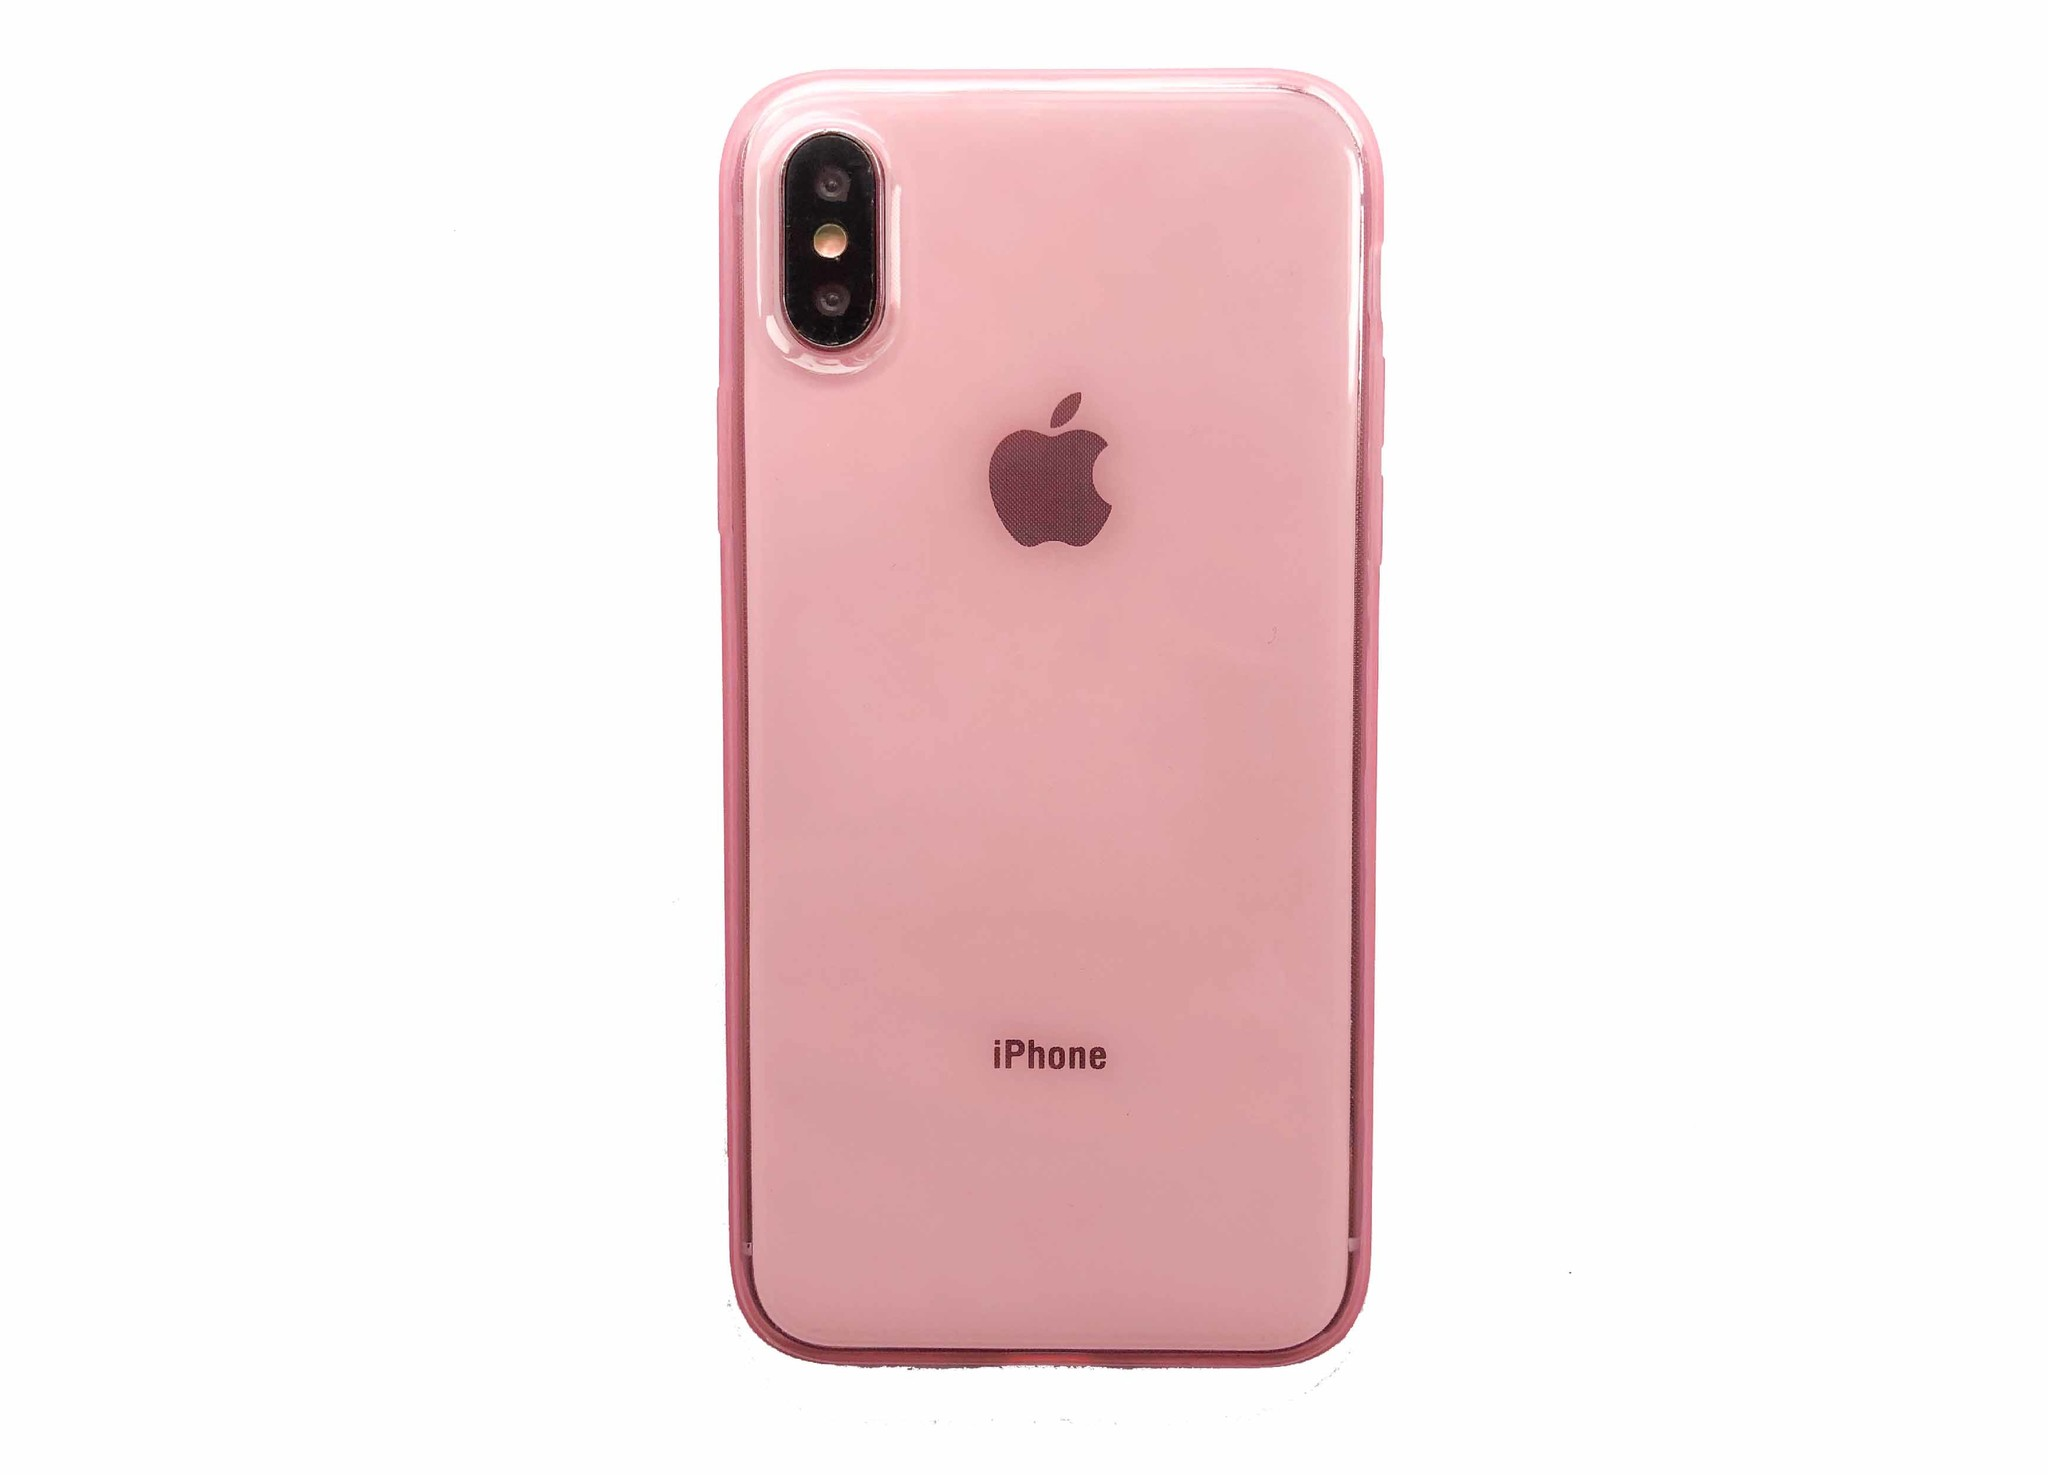 Smartphonehoesje iPhone XS Max| Roze / transparant